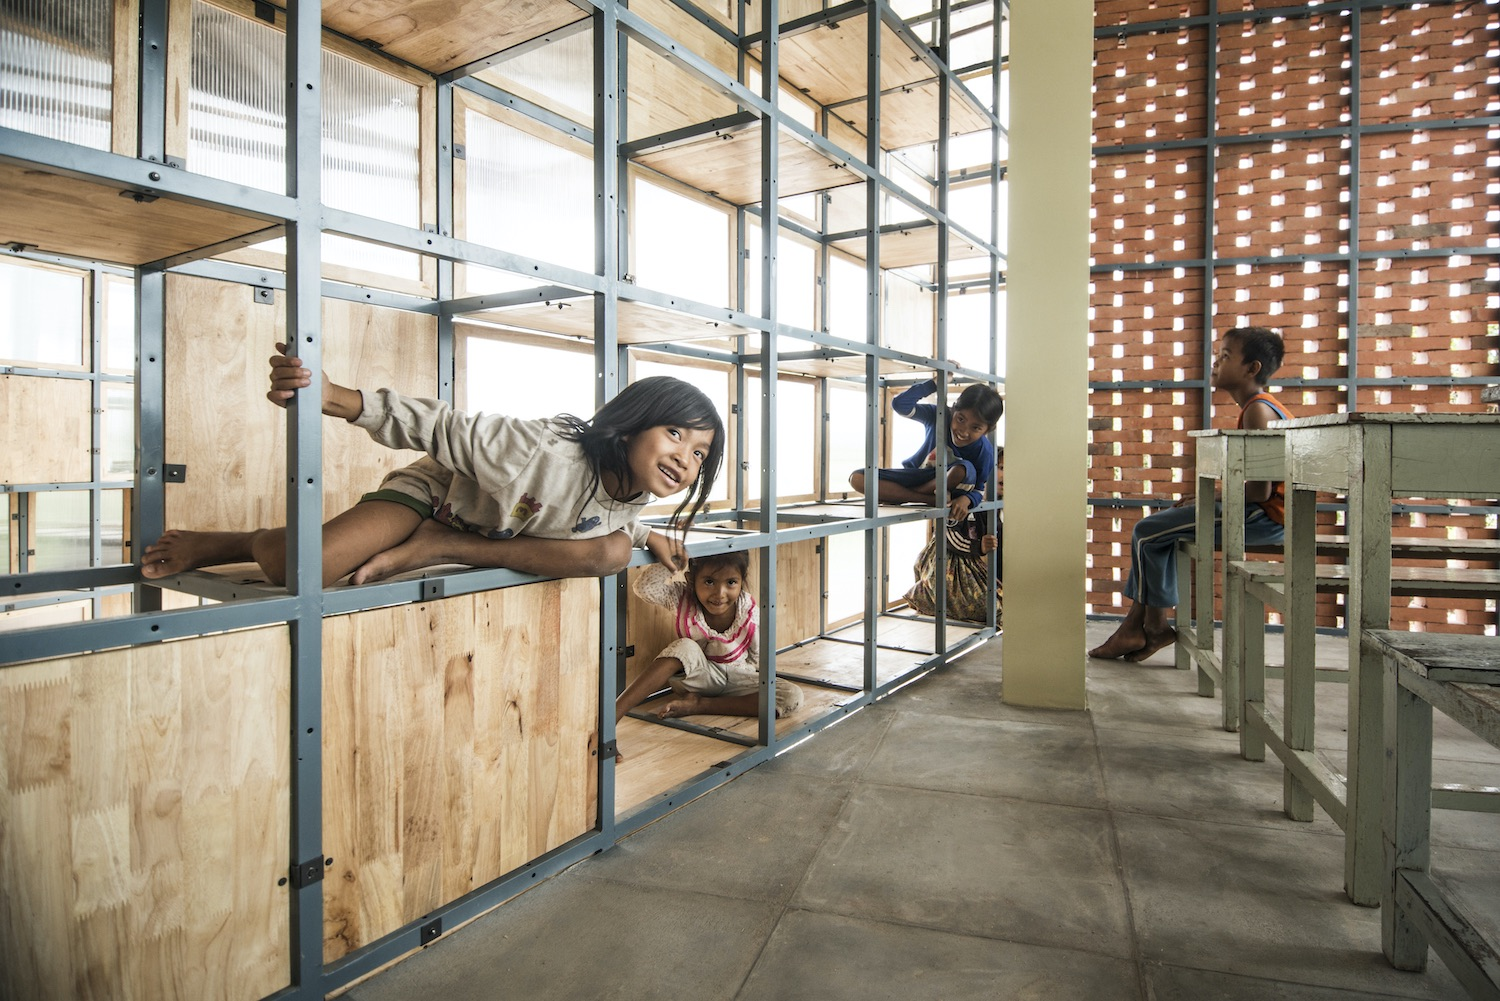 kids playing on wood pallet walls in the school